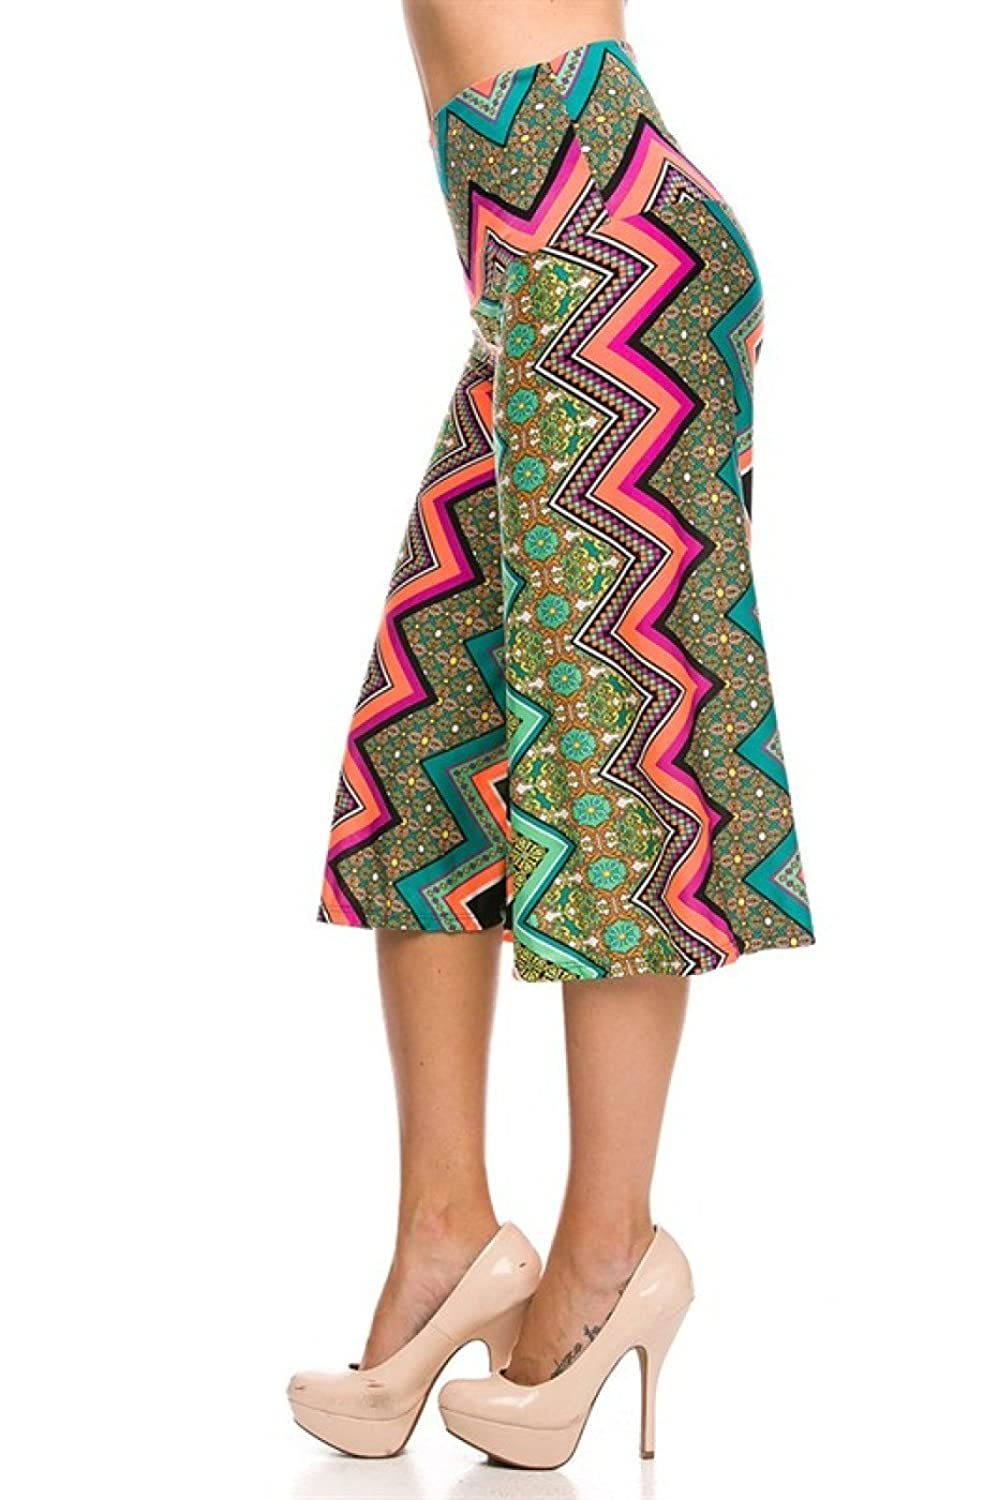 2LUV Women's Mix Print High Waisted Culotte Goucho Pants